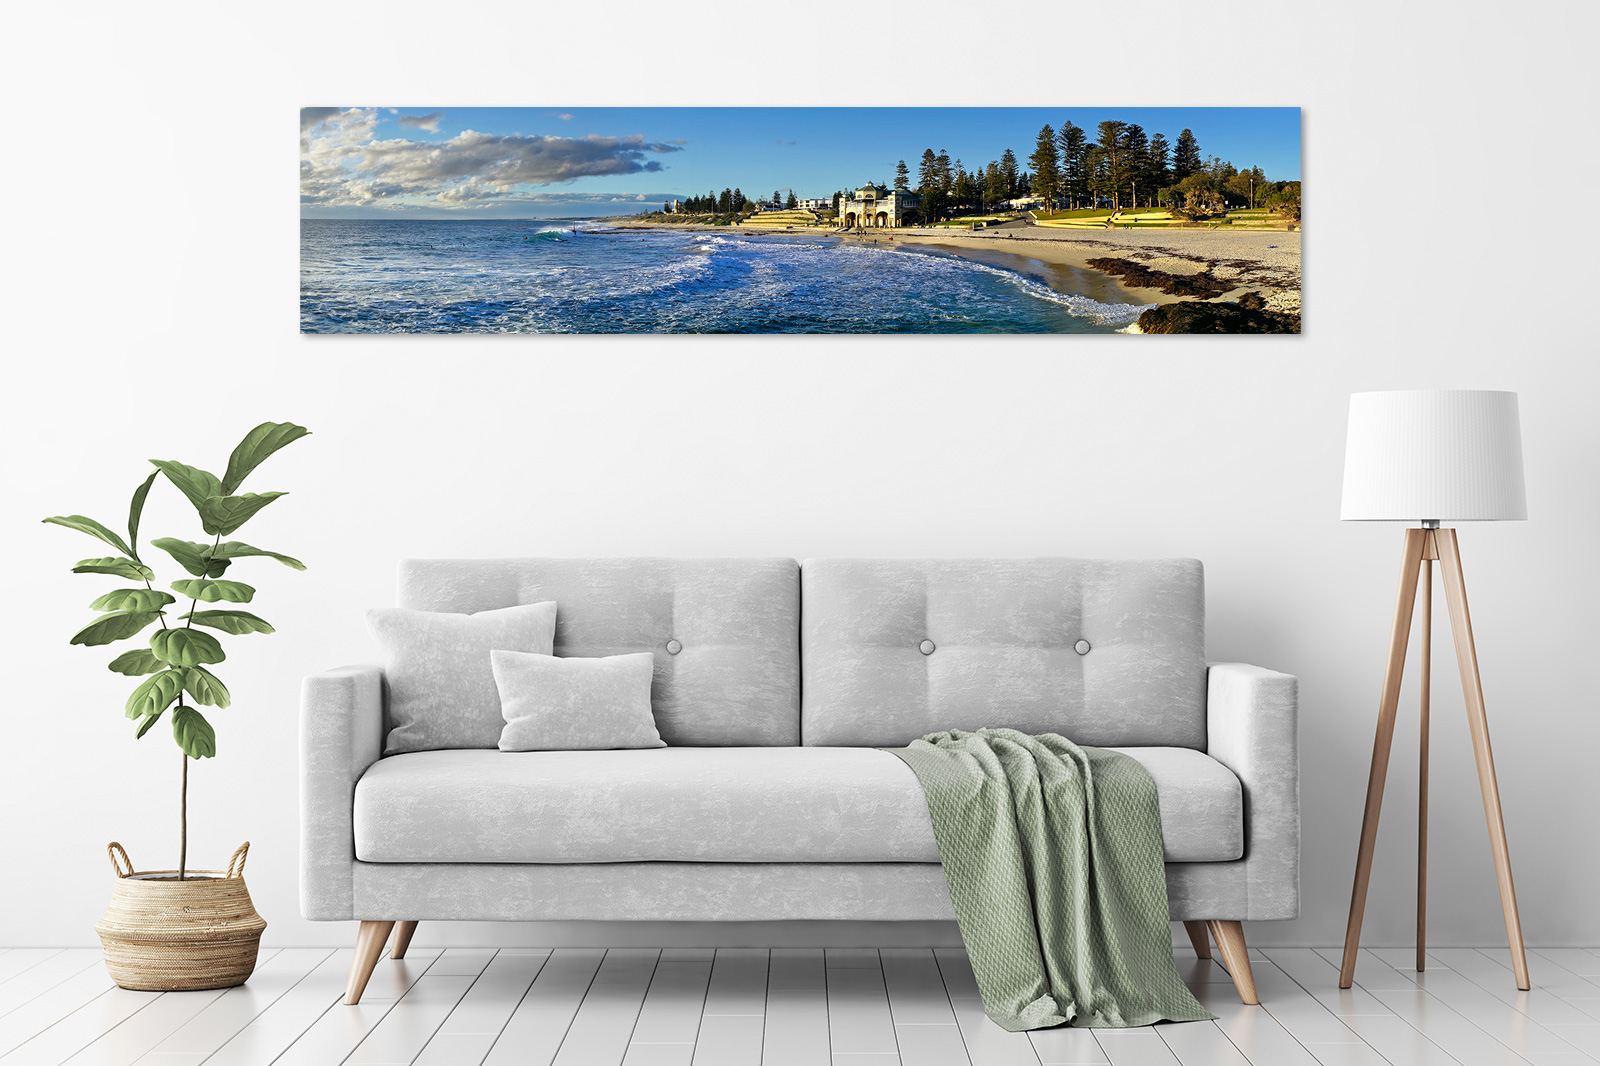 Jason Mazur - 'Winter Swell, Cottesloe Beach 006' in a room